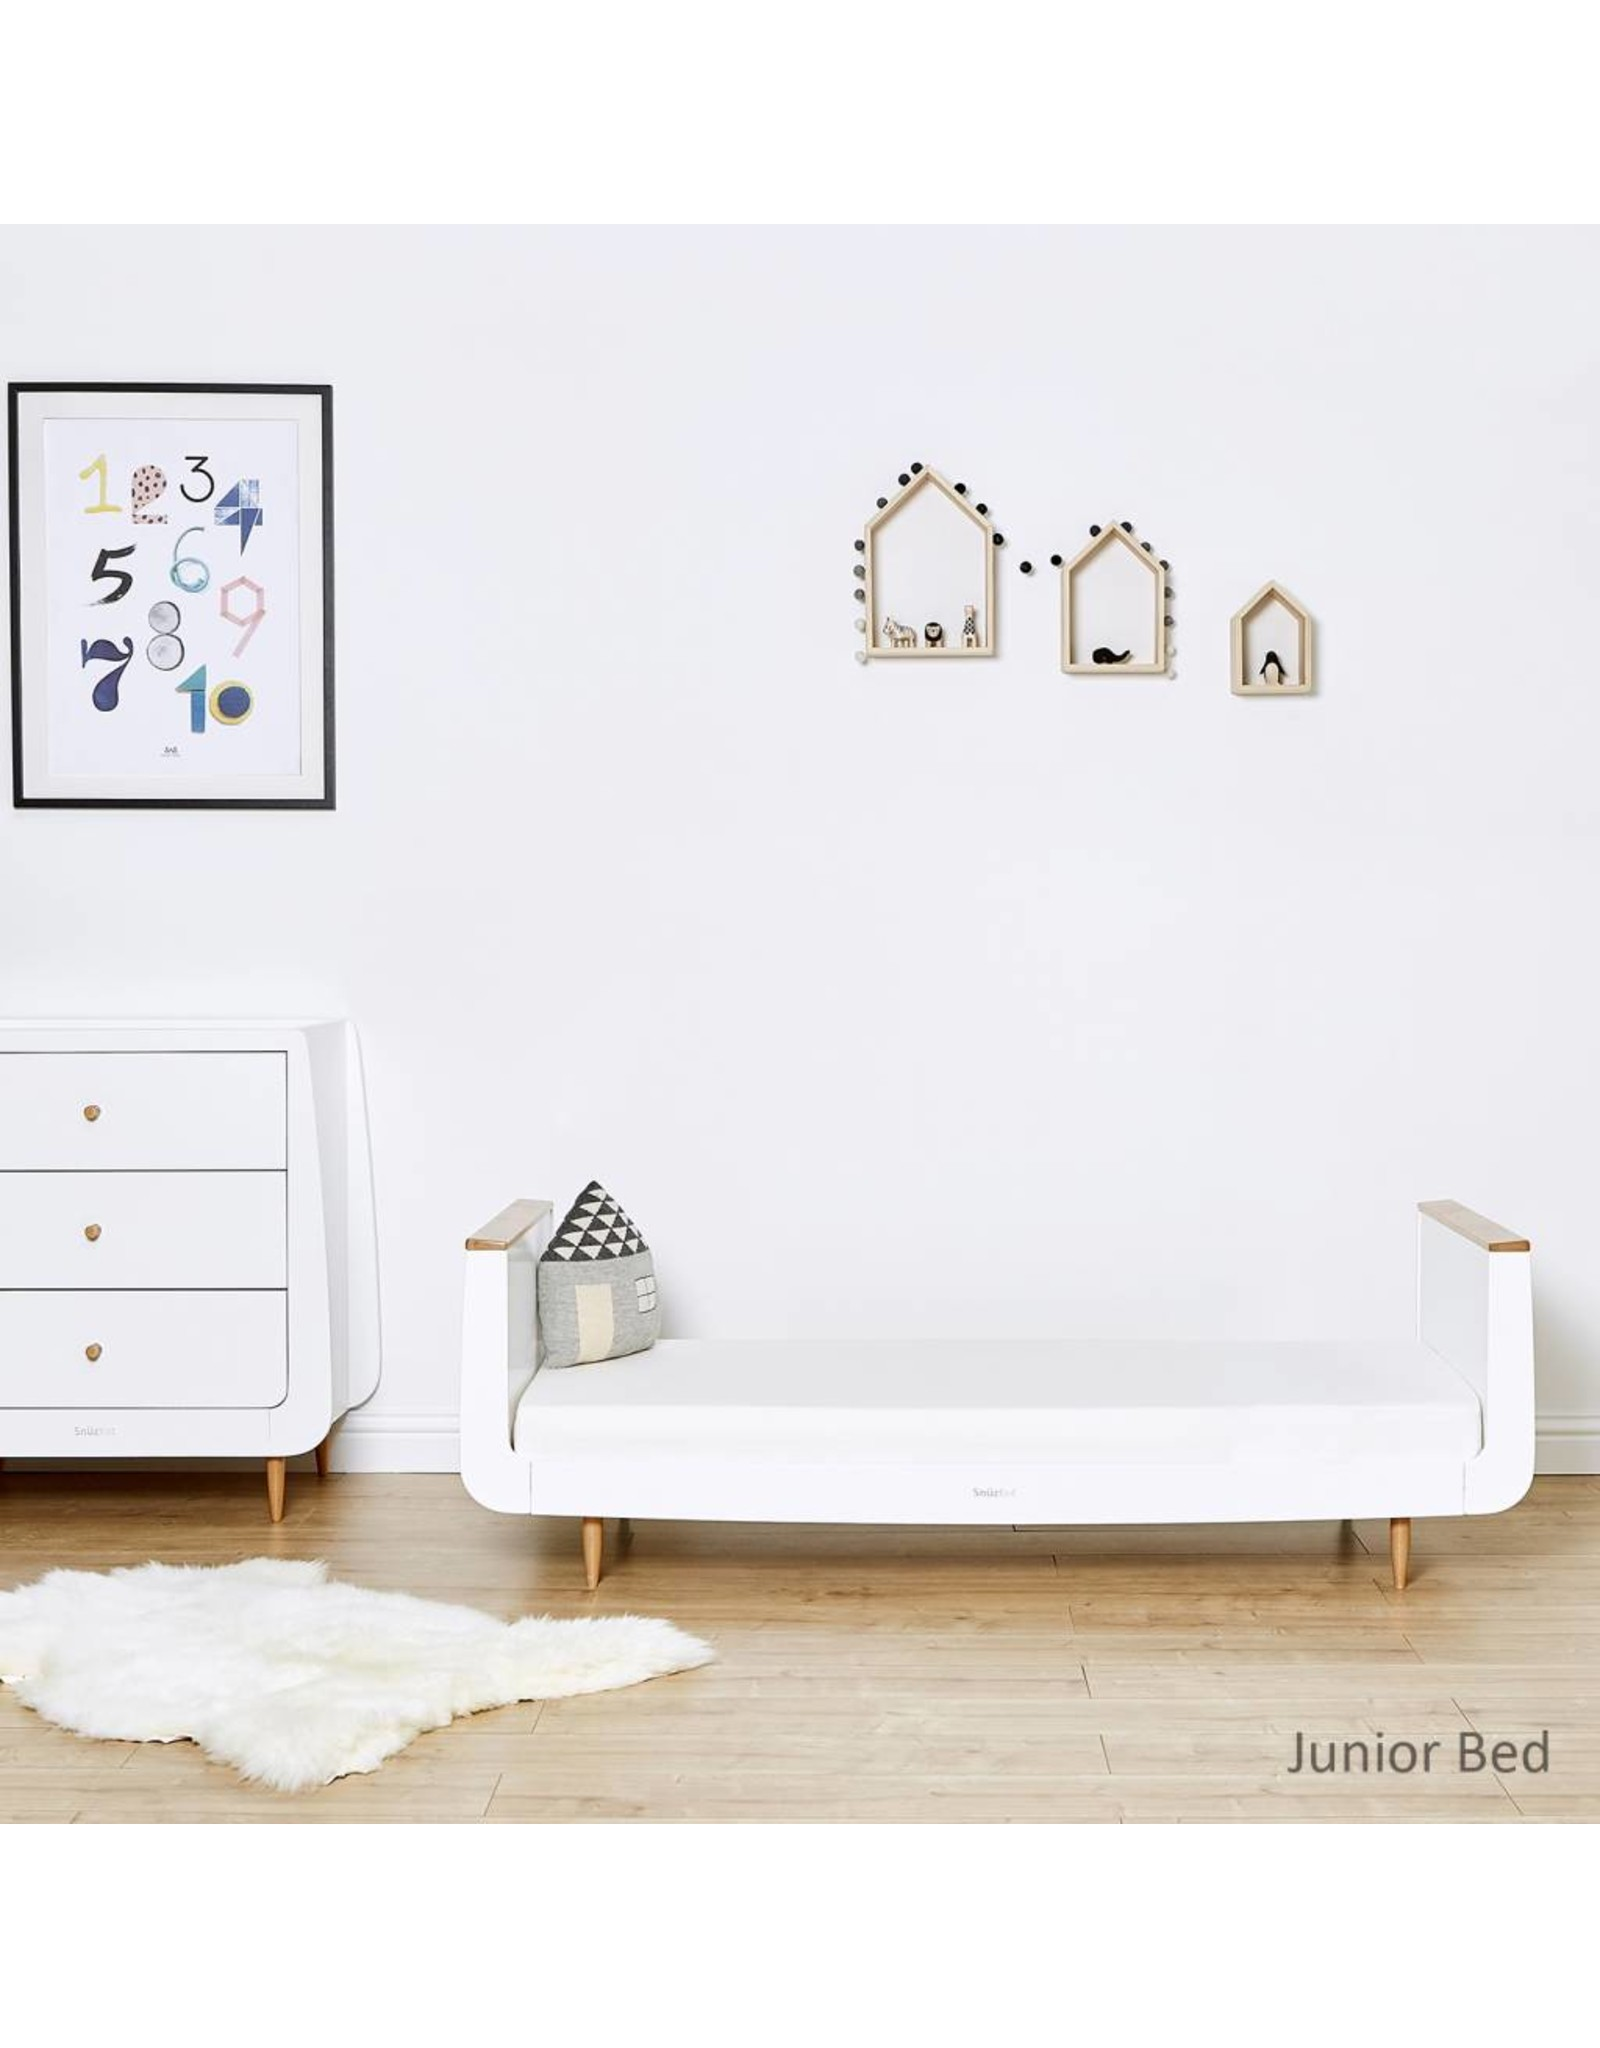 SnuzKot JuniorBed Extension Kit